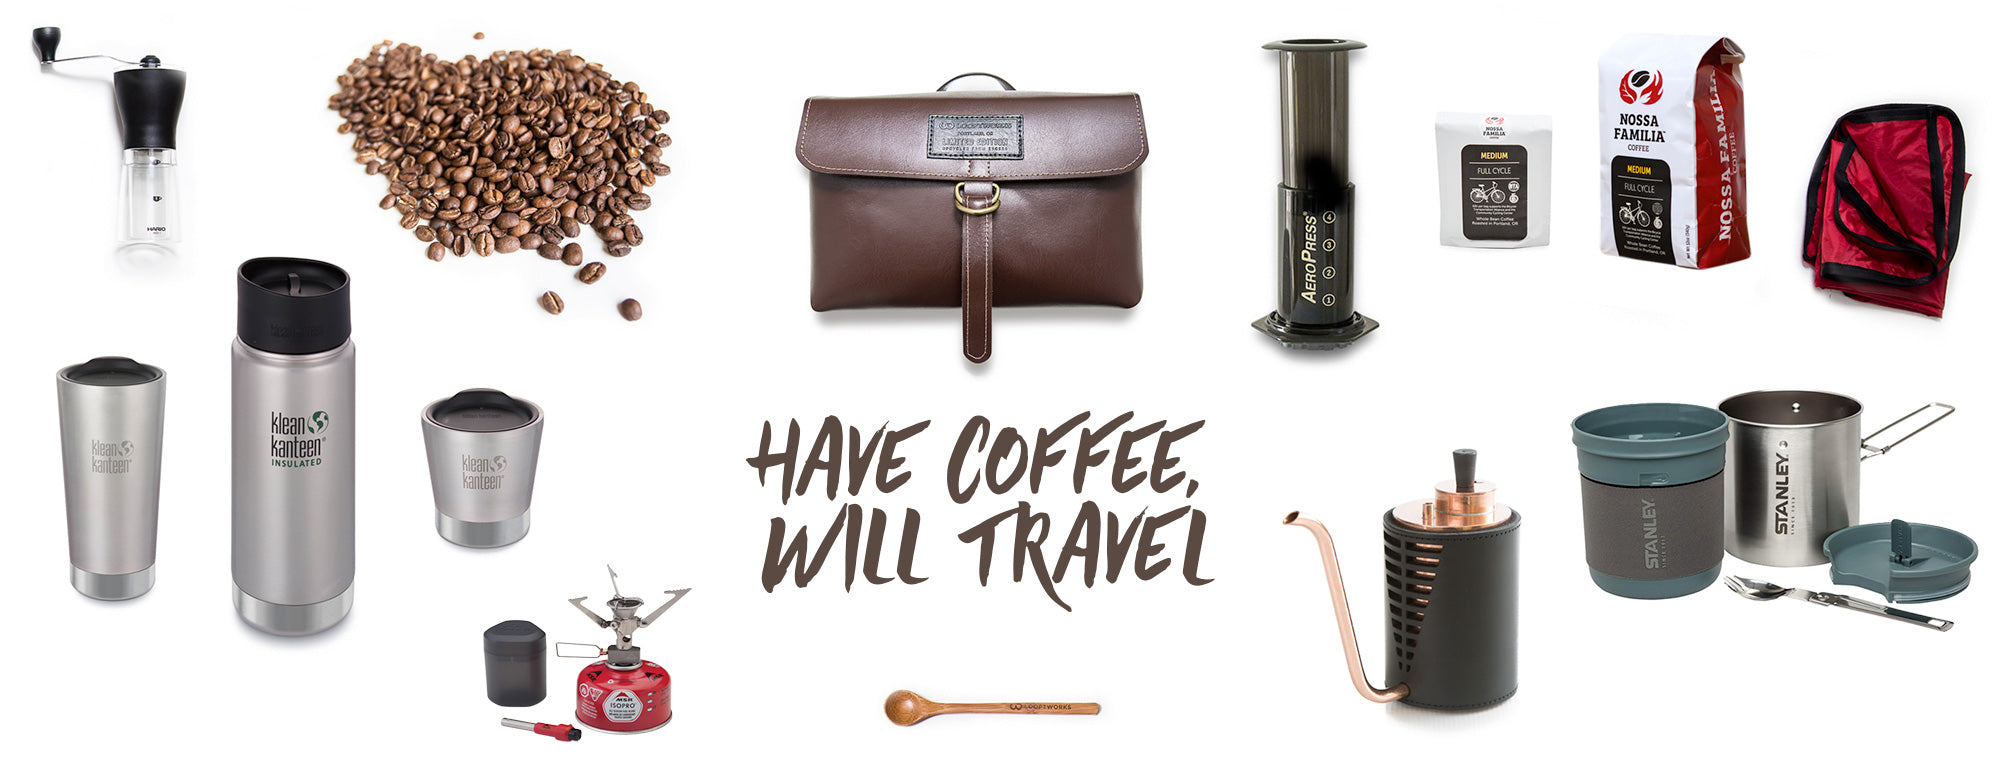 Have Coffee Will Travel Prize Package